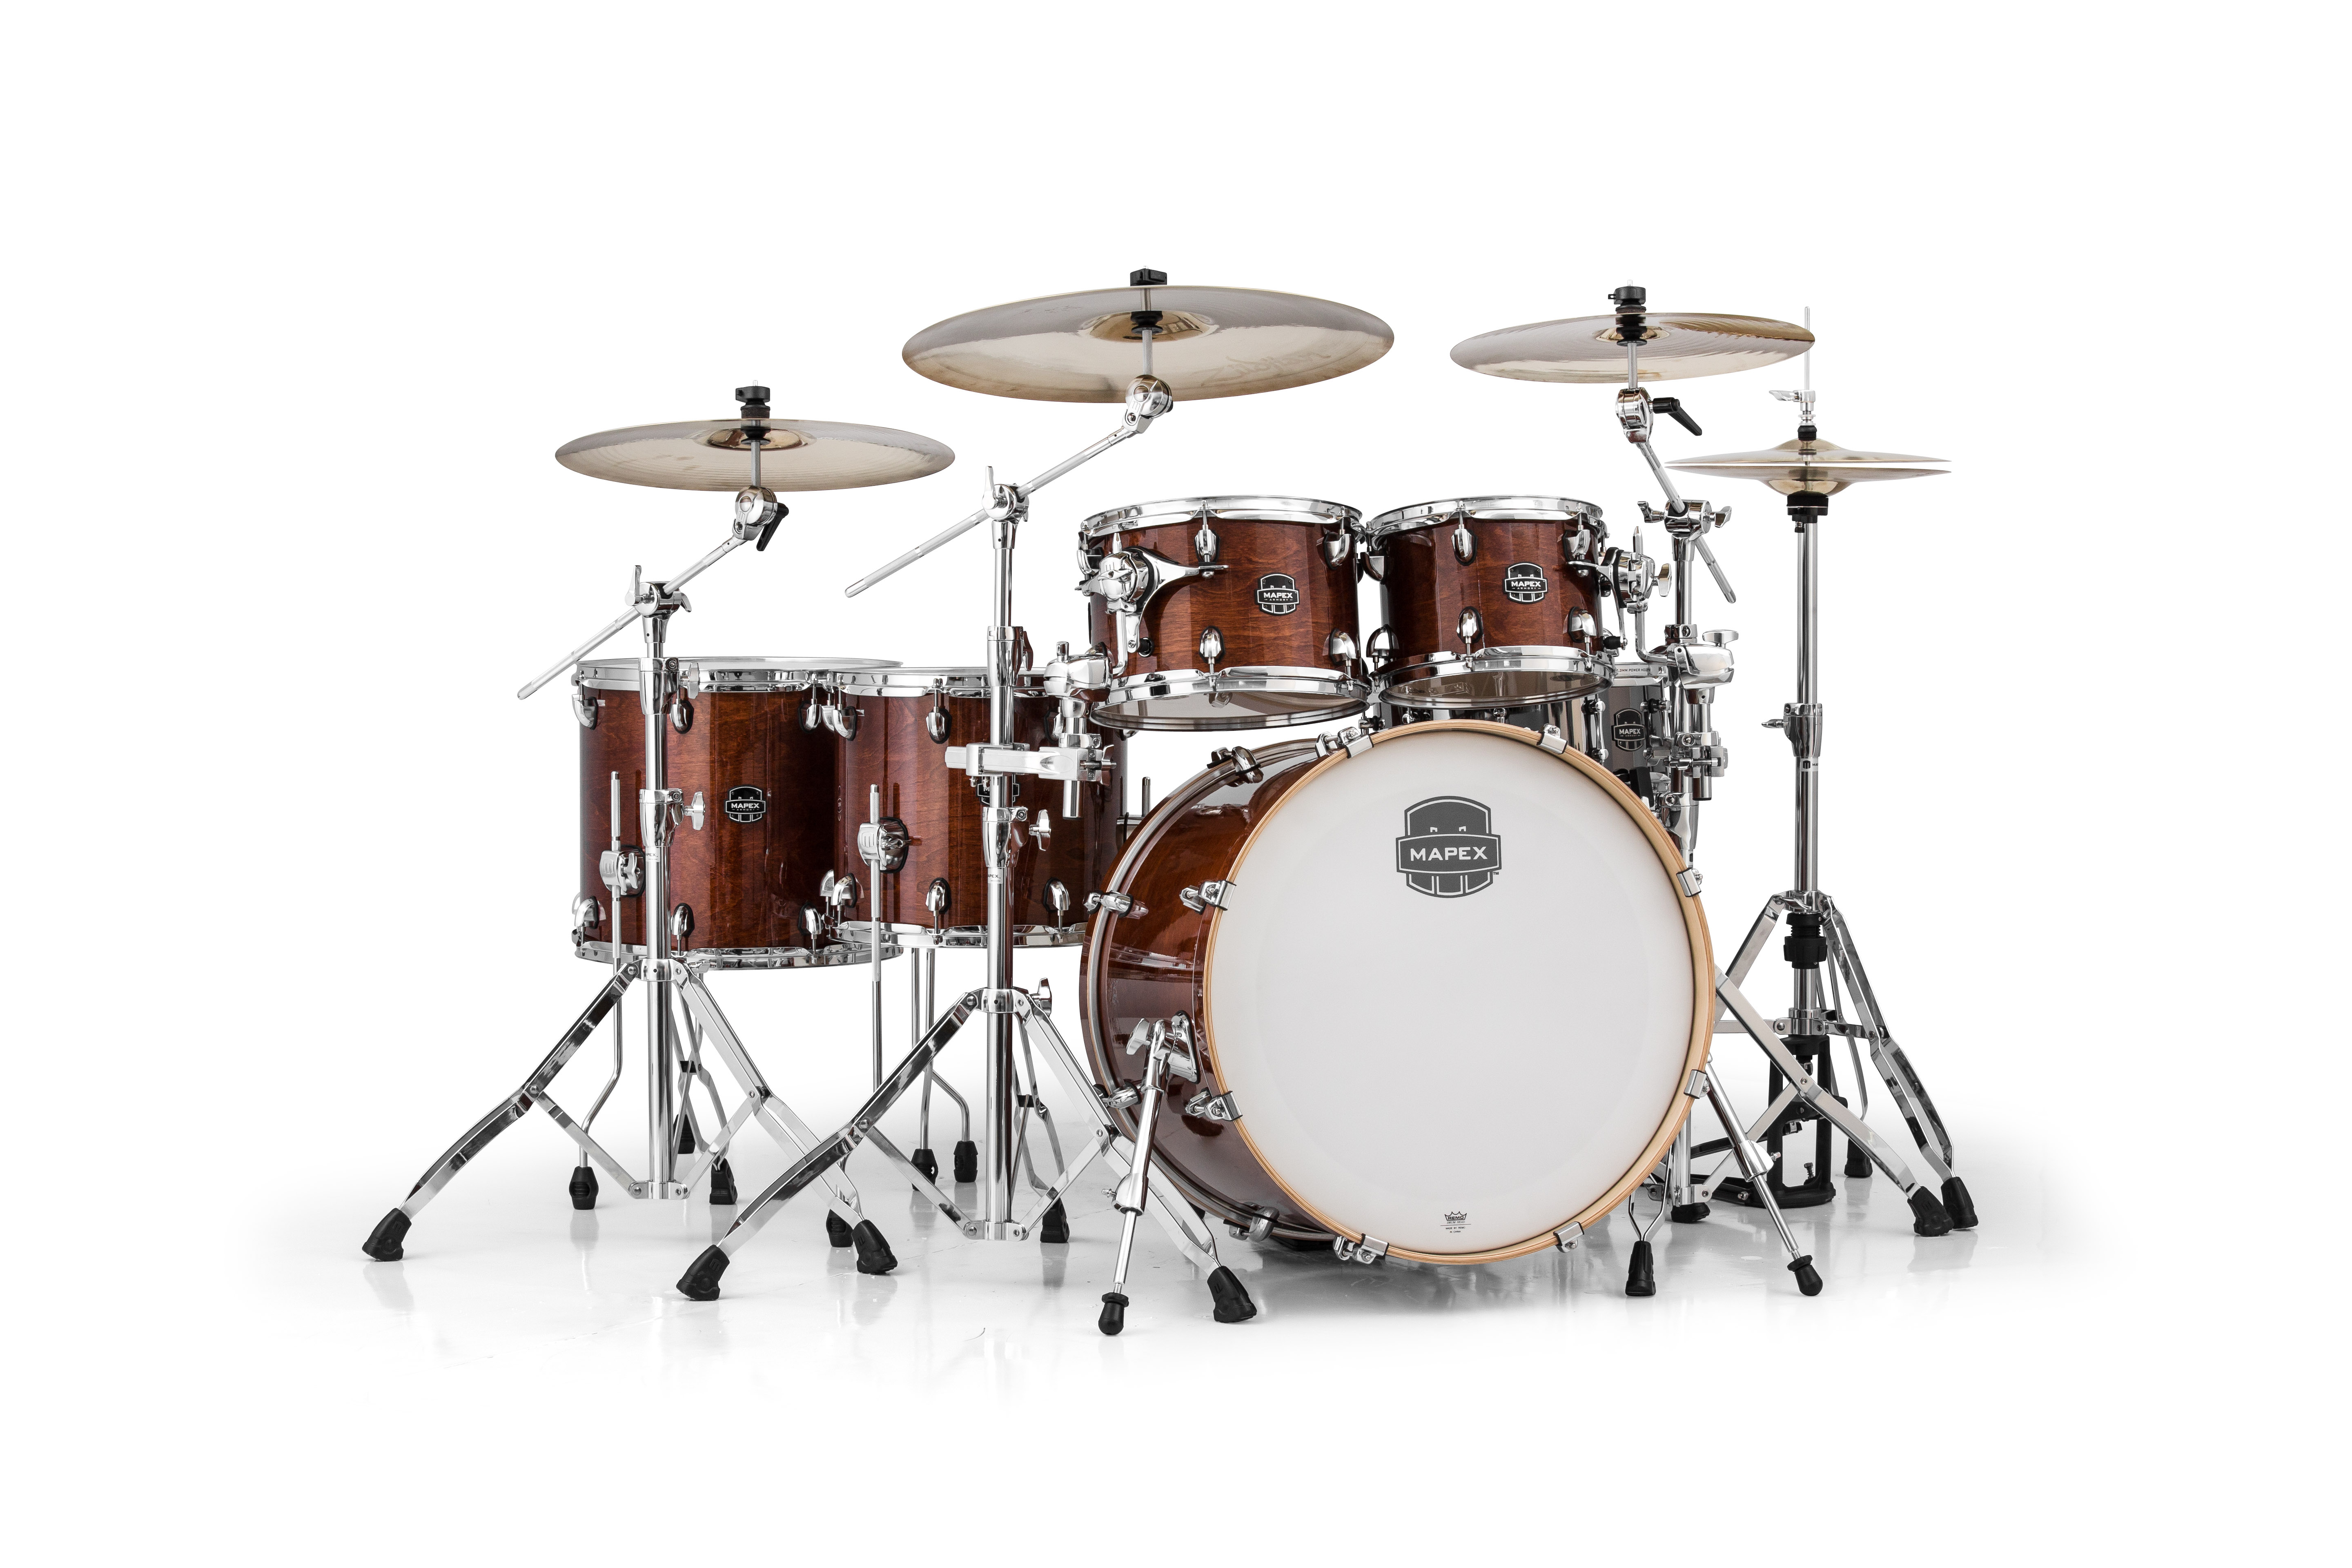 Mapex Armory 6 Piece Studioease Fast Shell Pack - AR628SFUWT - Transparent Walnut